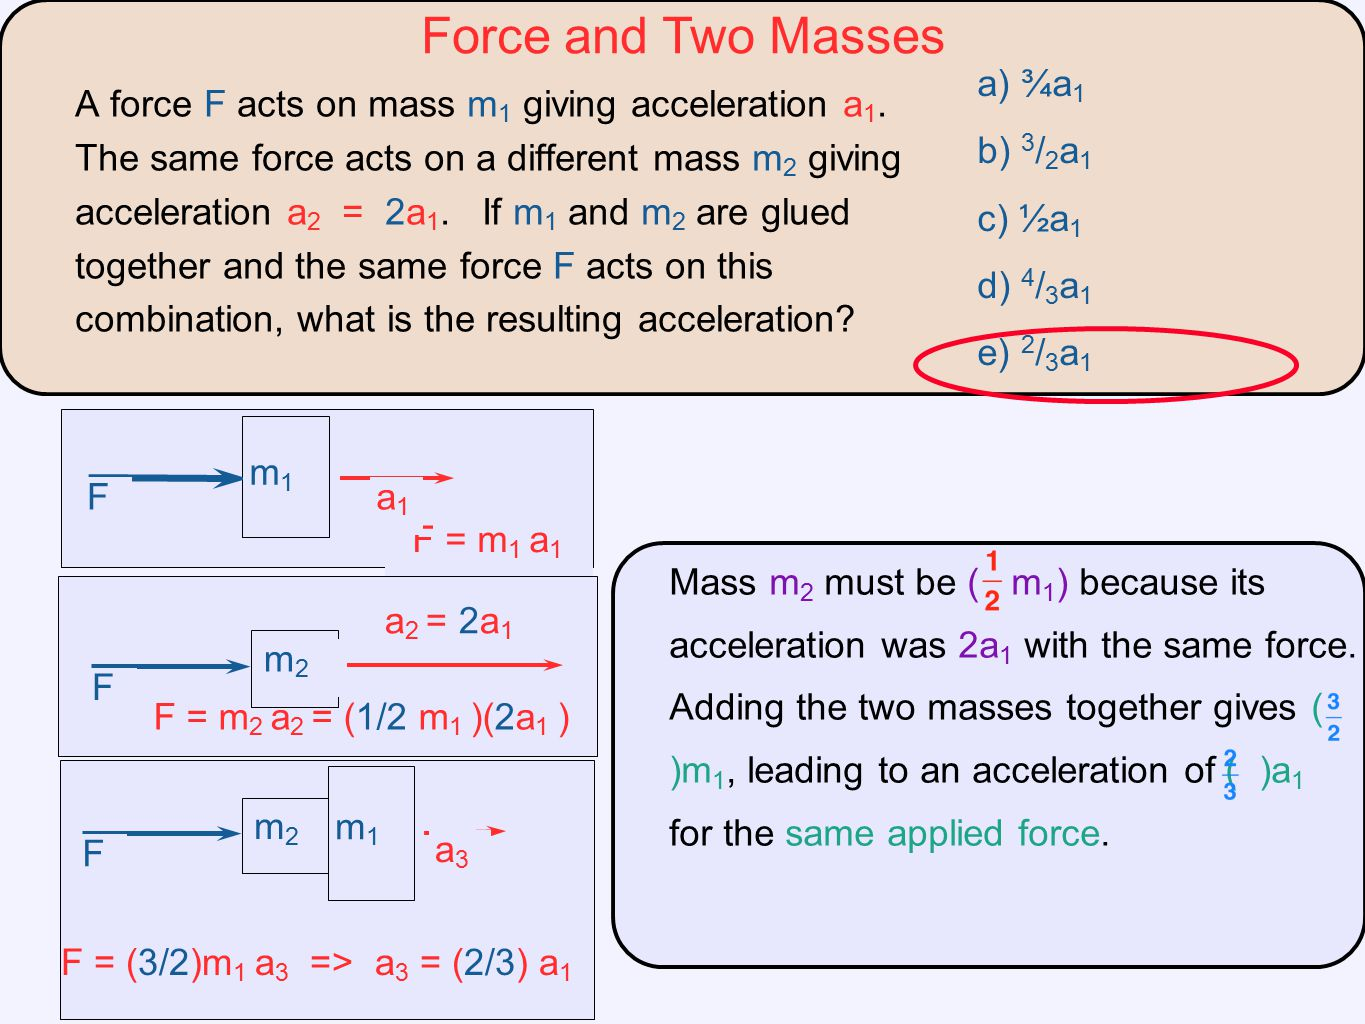 Mass m 2 must be ( m 1 ) because its acceleration was 2a 1 with the same force.